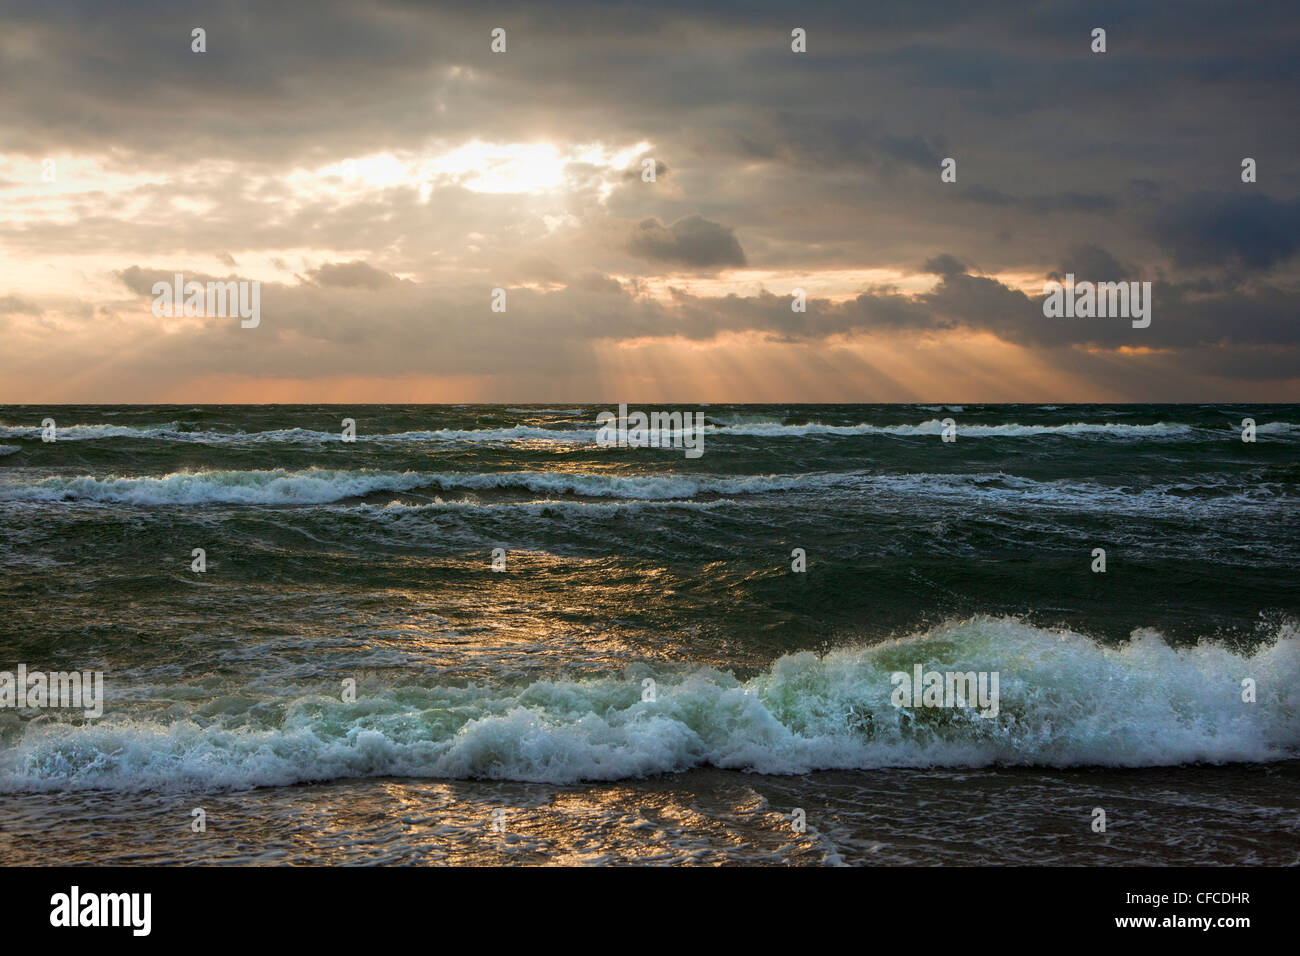 Thunderclouds at Darss west beach, Fischland-Darss-Zingst, Baltic Sea, Mecklenburg-West Pomerania, Germany - Stock Image